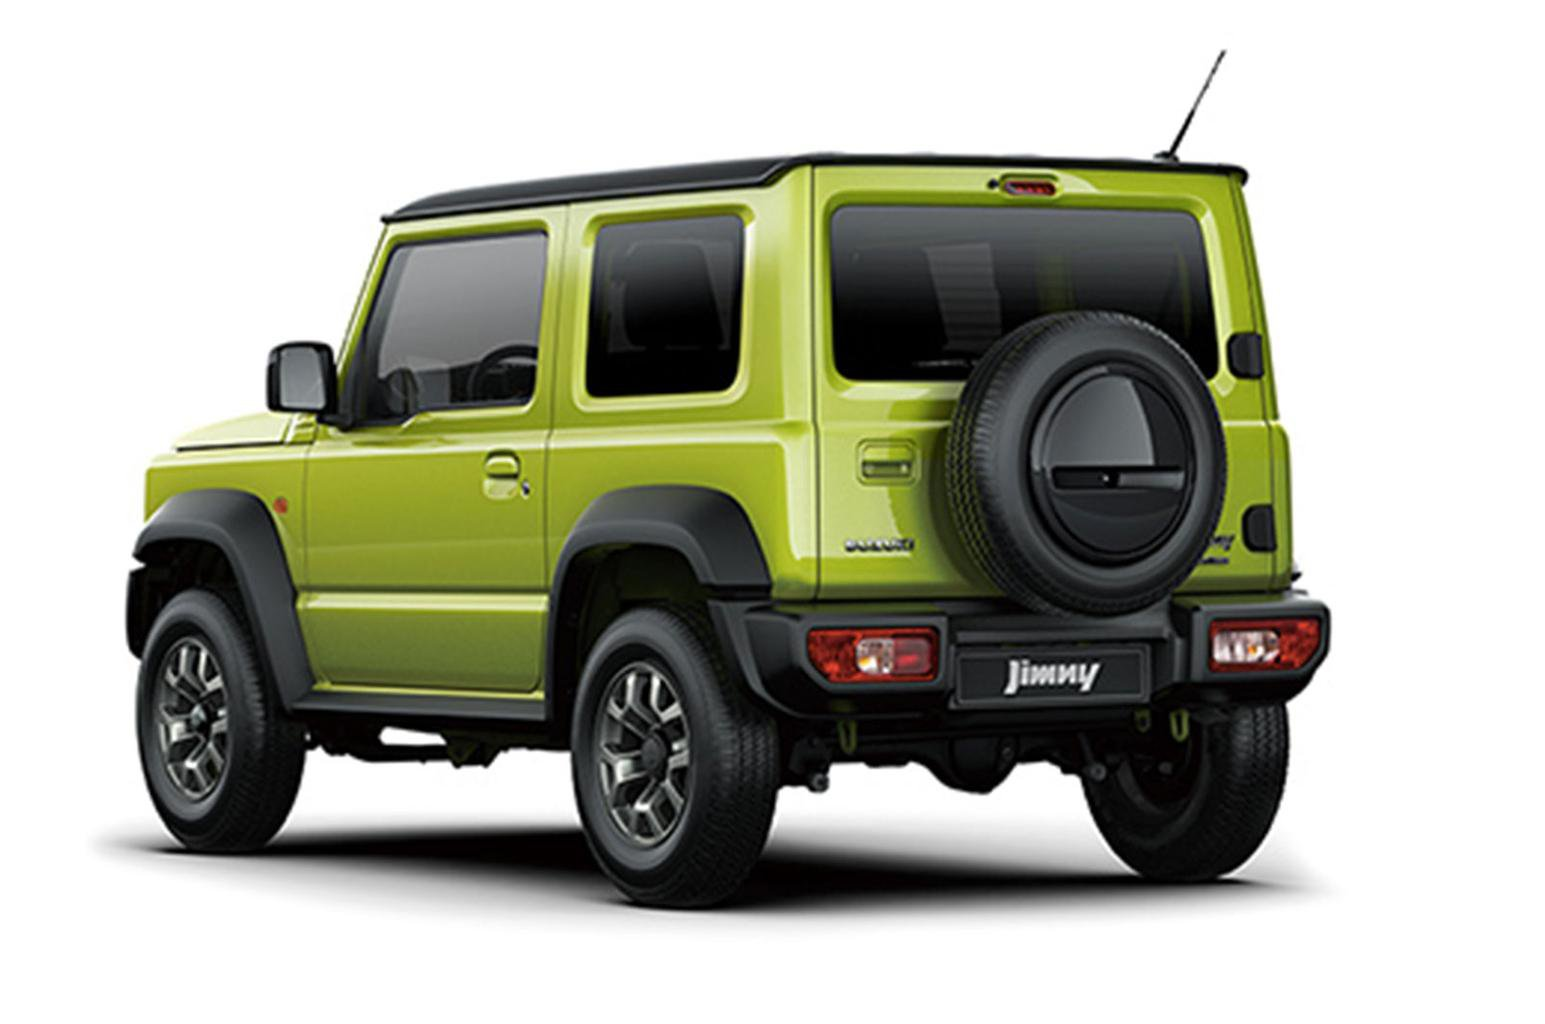 2019 Suzuki Jimny – price, specs and release date